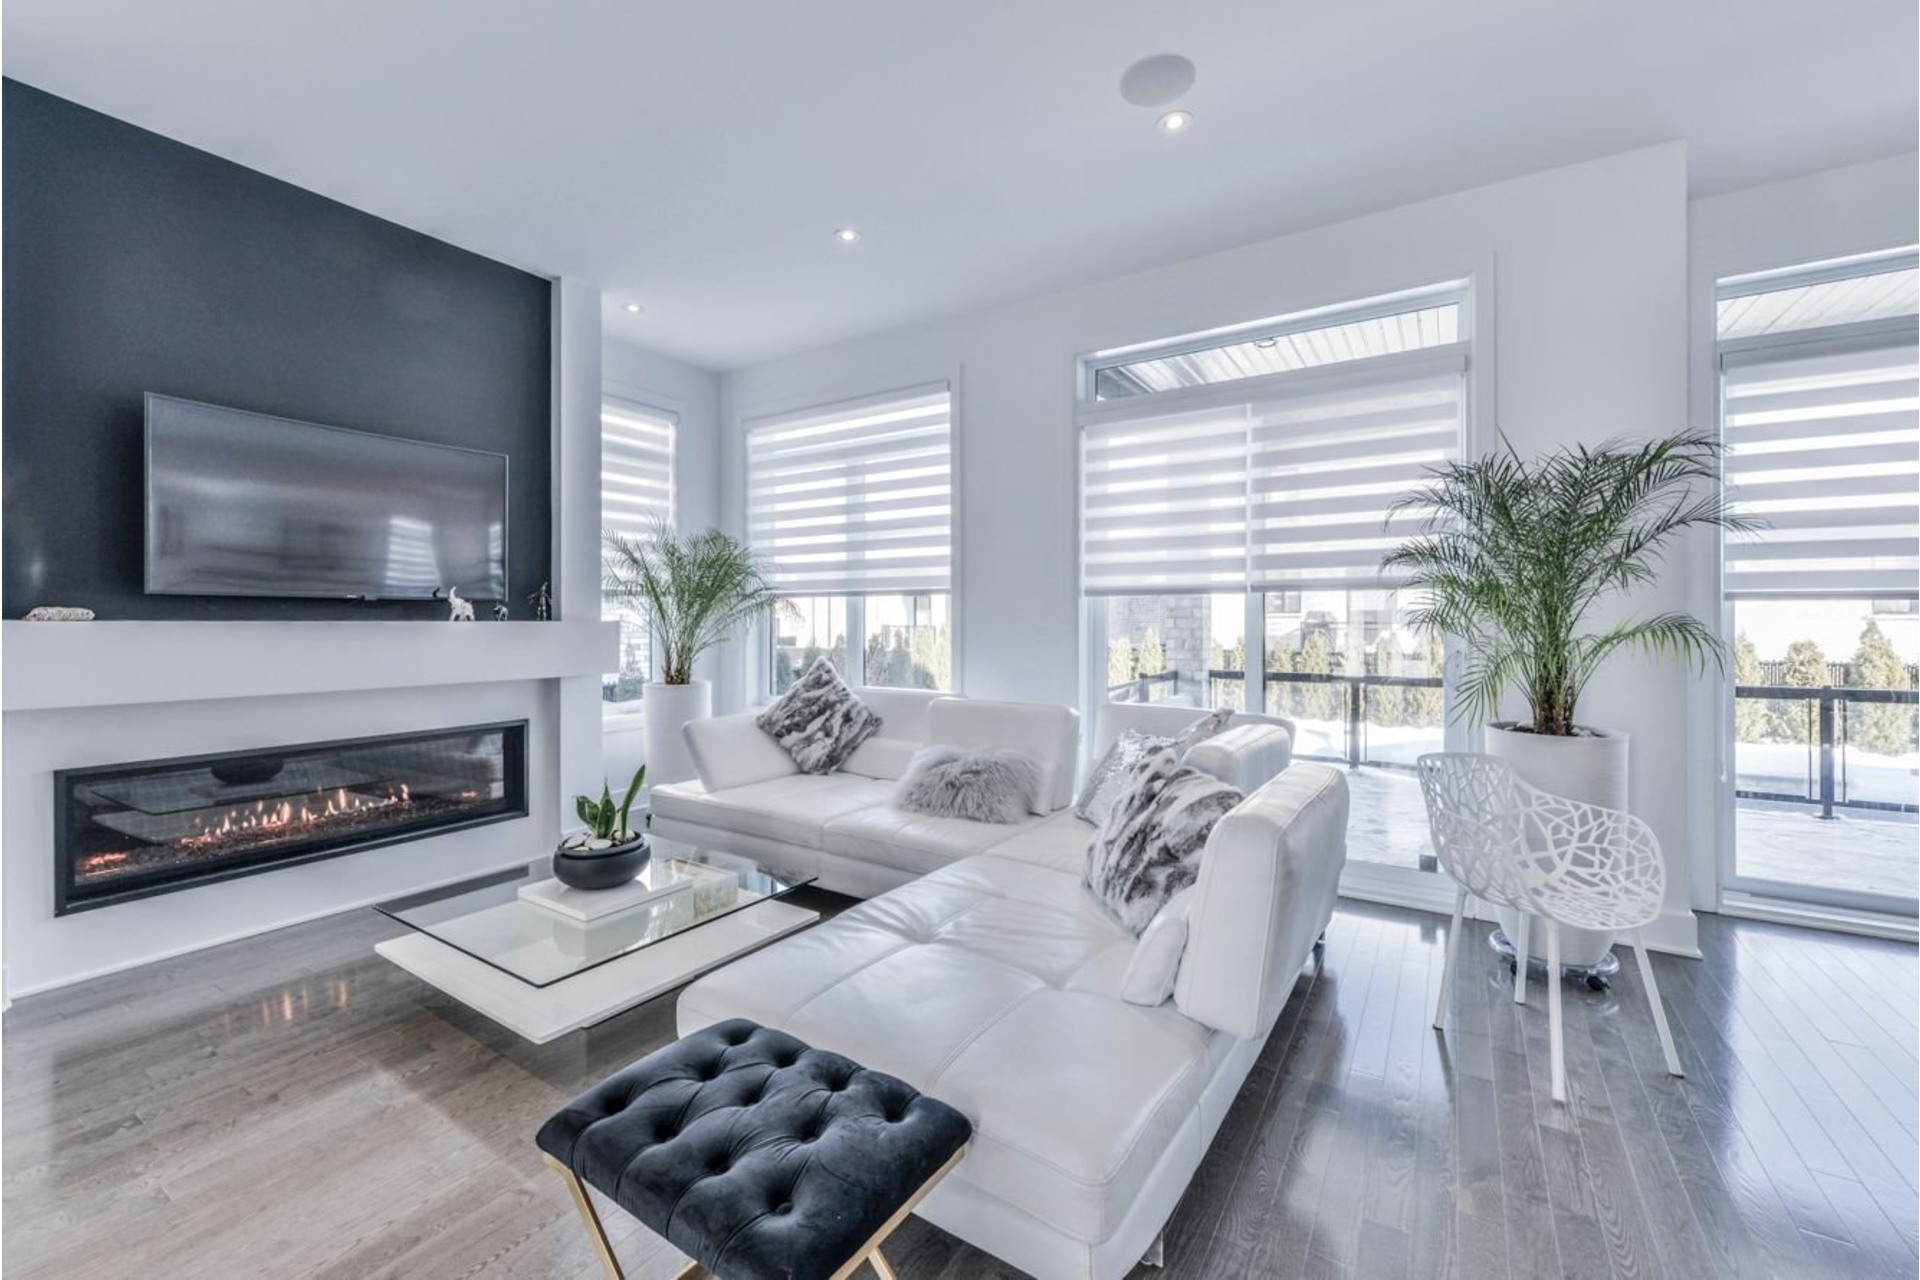 image 7 - House For sale Brossard - 7 rooms